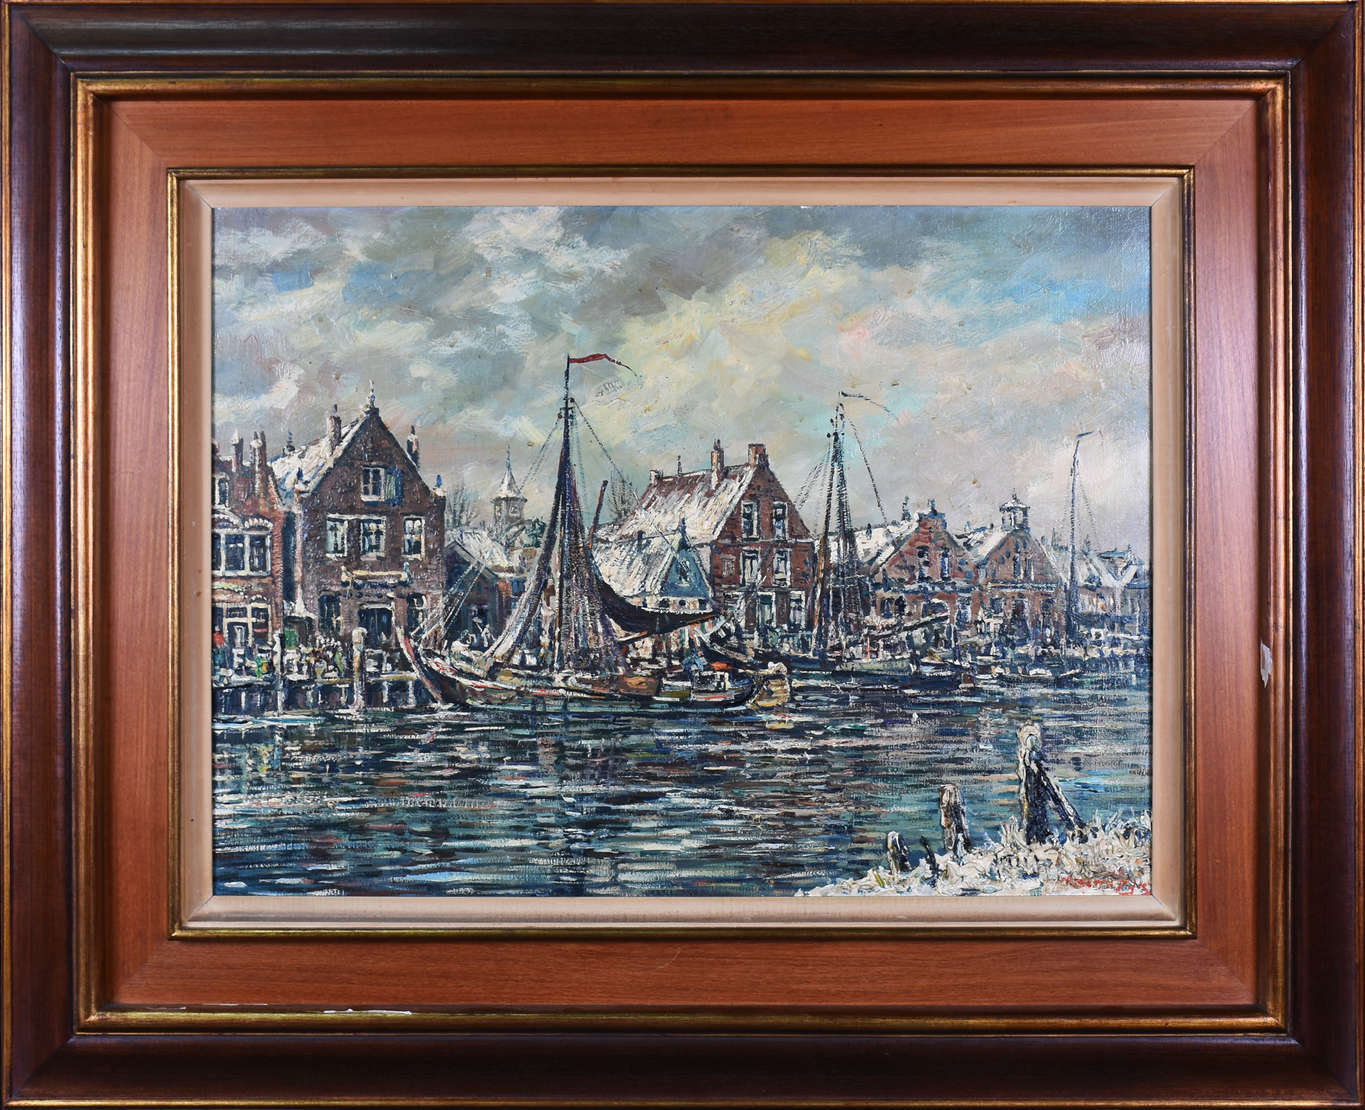 WIN VAN DIJK (1915 / 1990), URK no inverno, Holland -